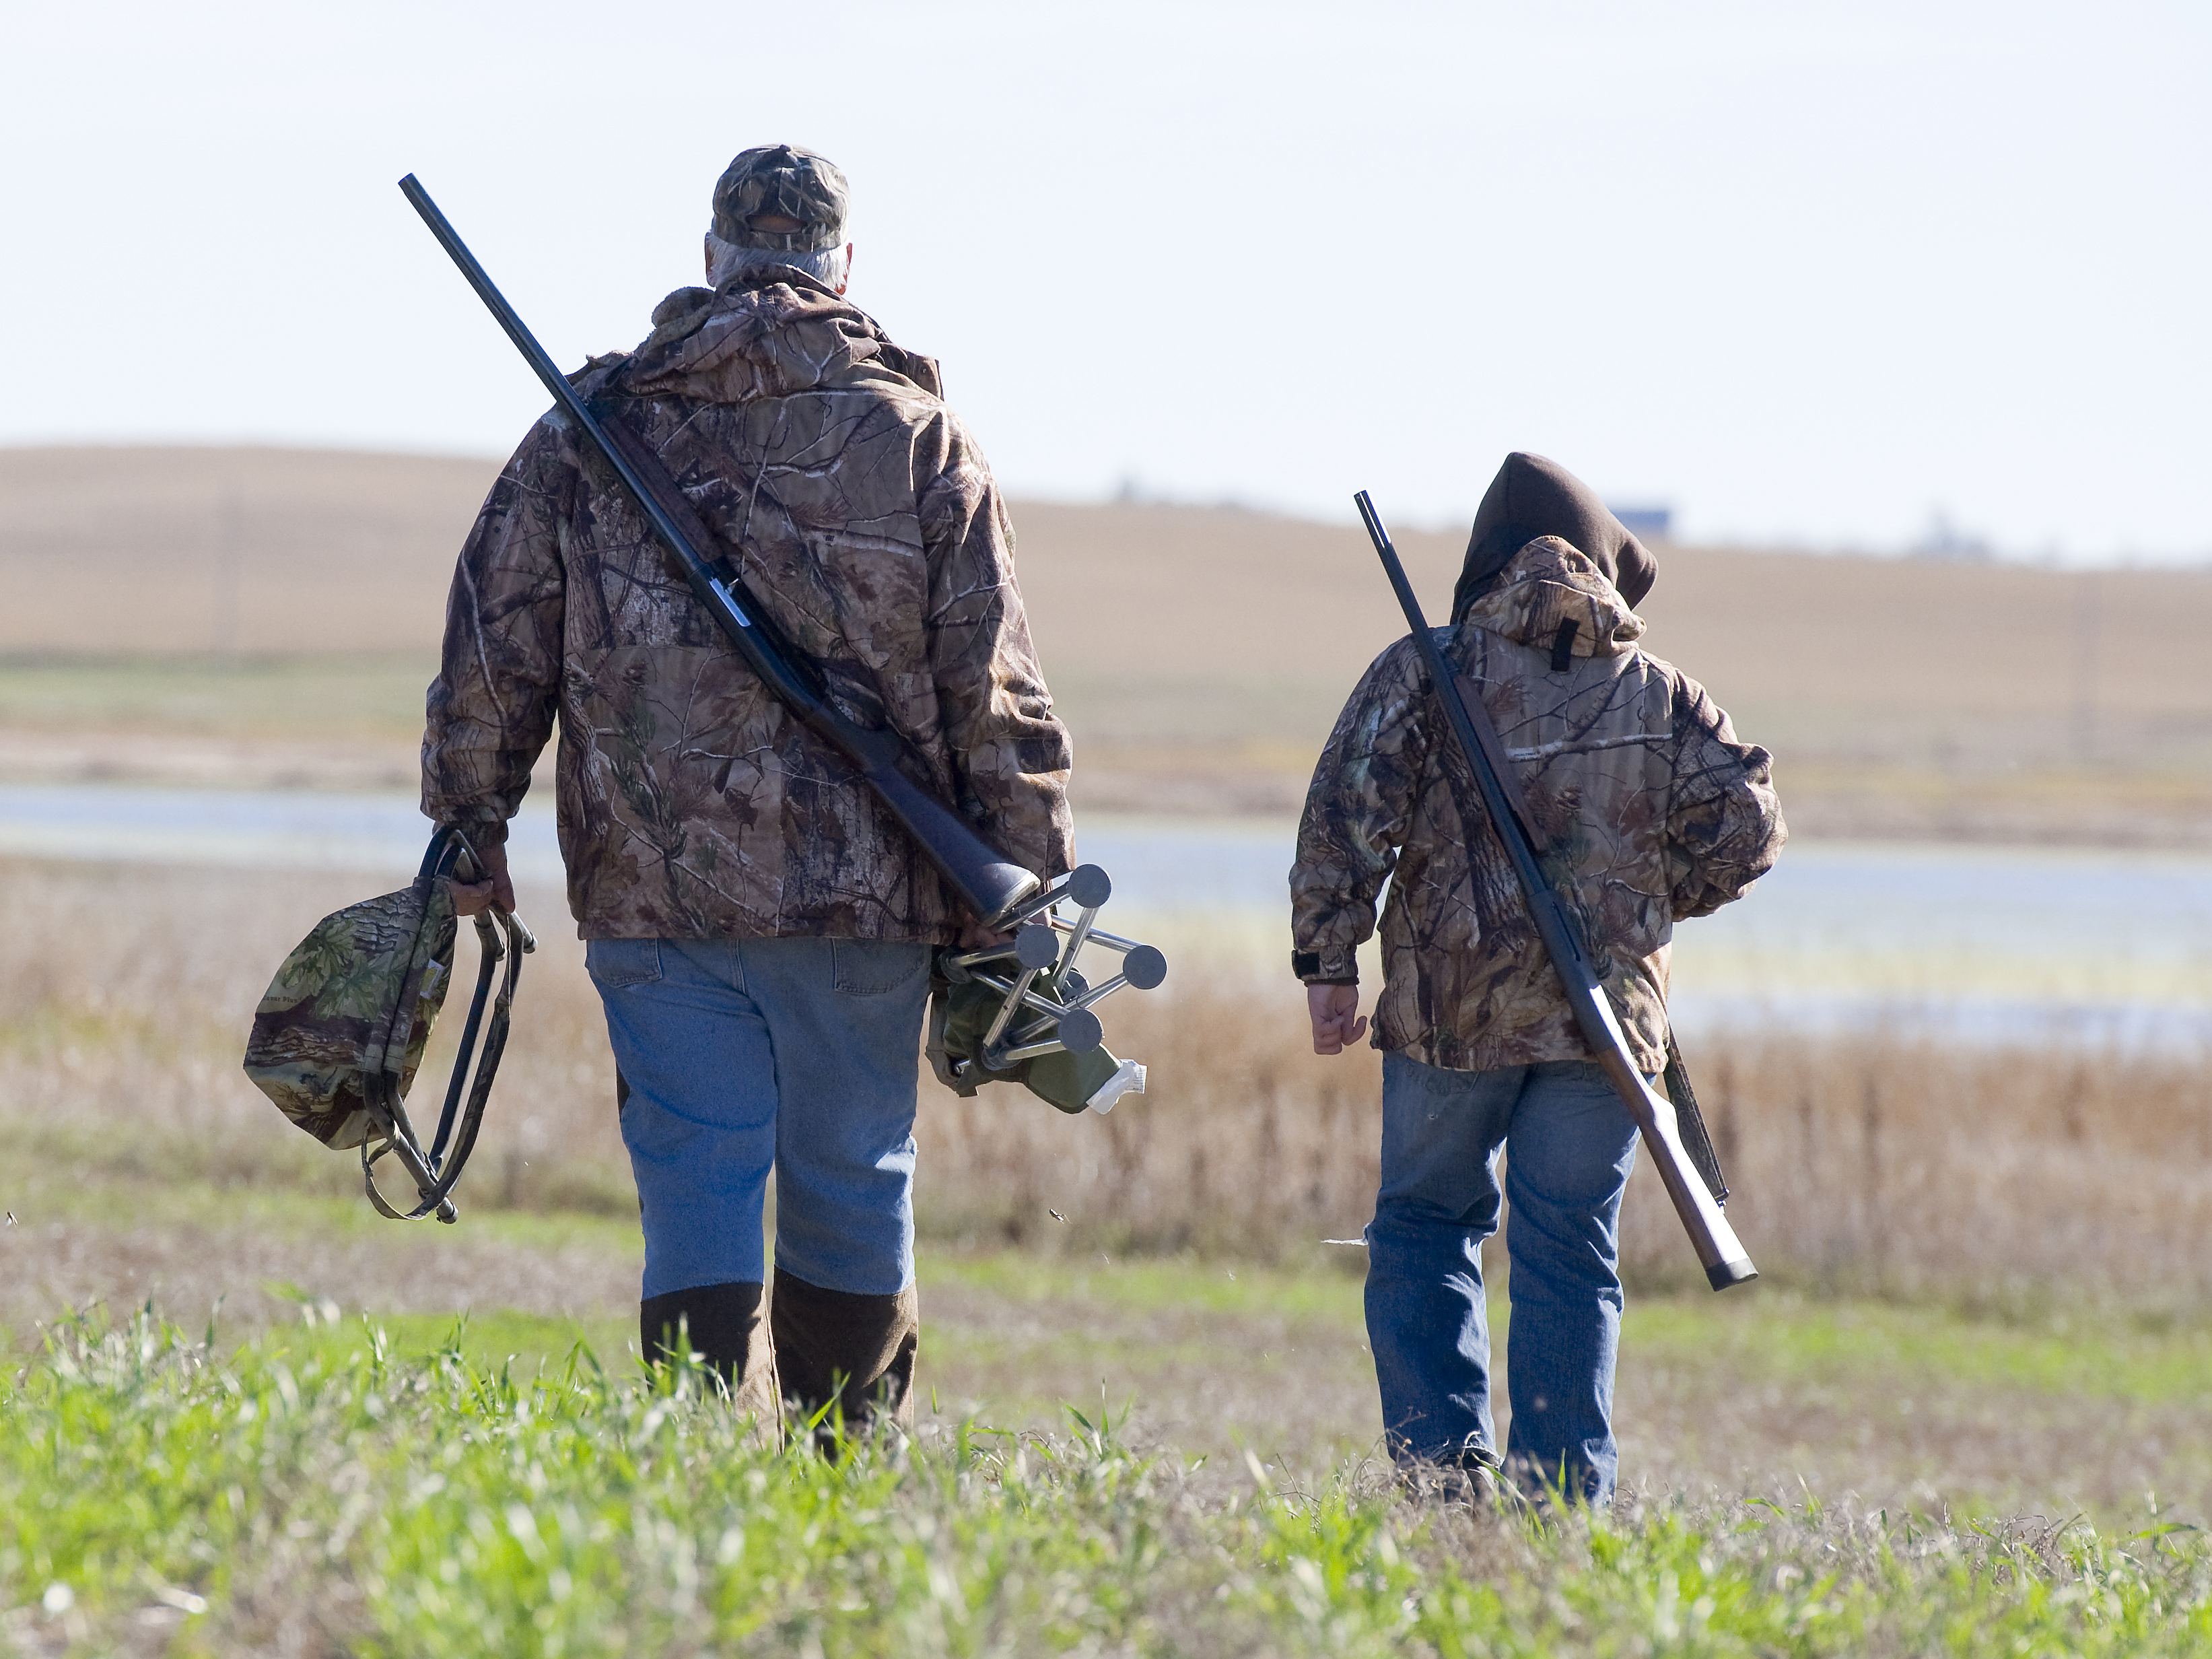 duck brands company blinds banded hunting down and release blind agassiz jacket into nation bags new press holdings merge